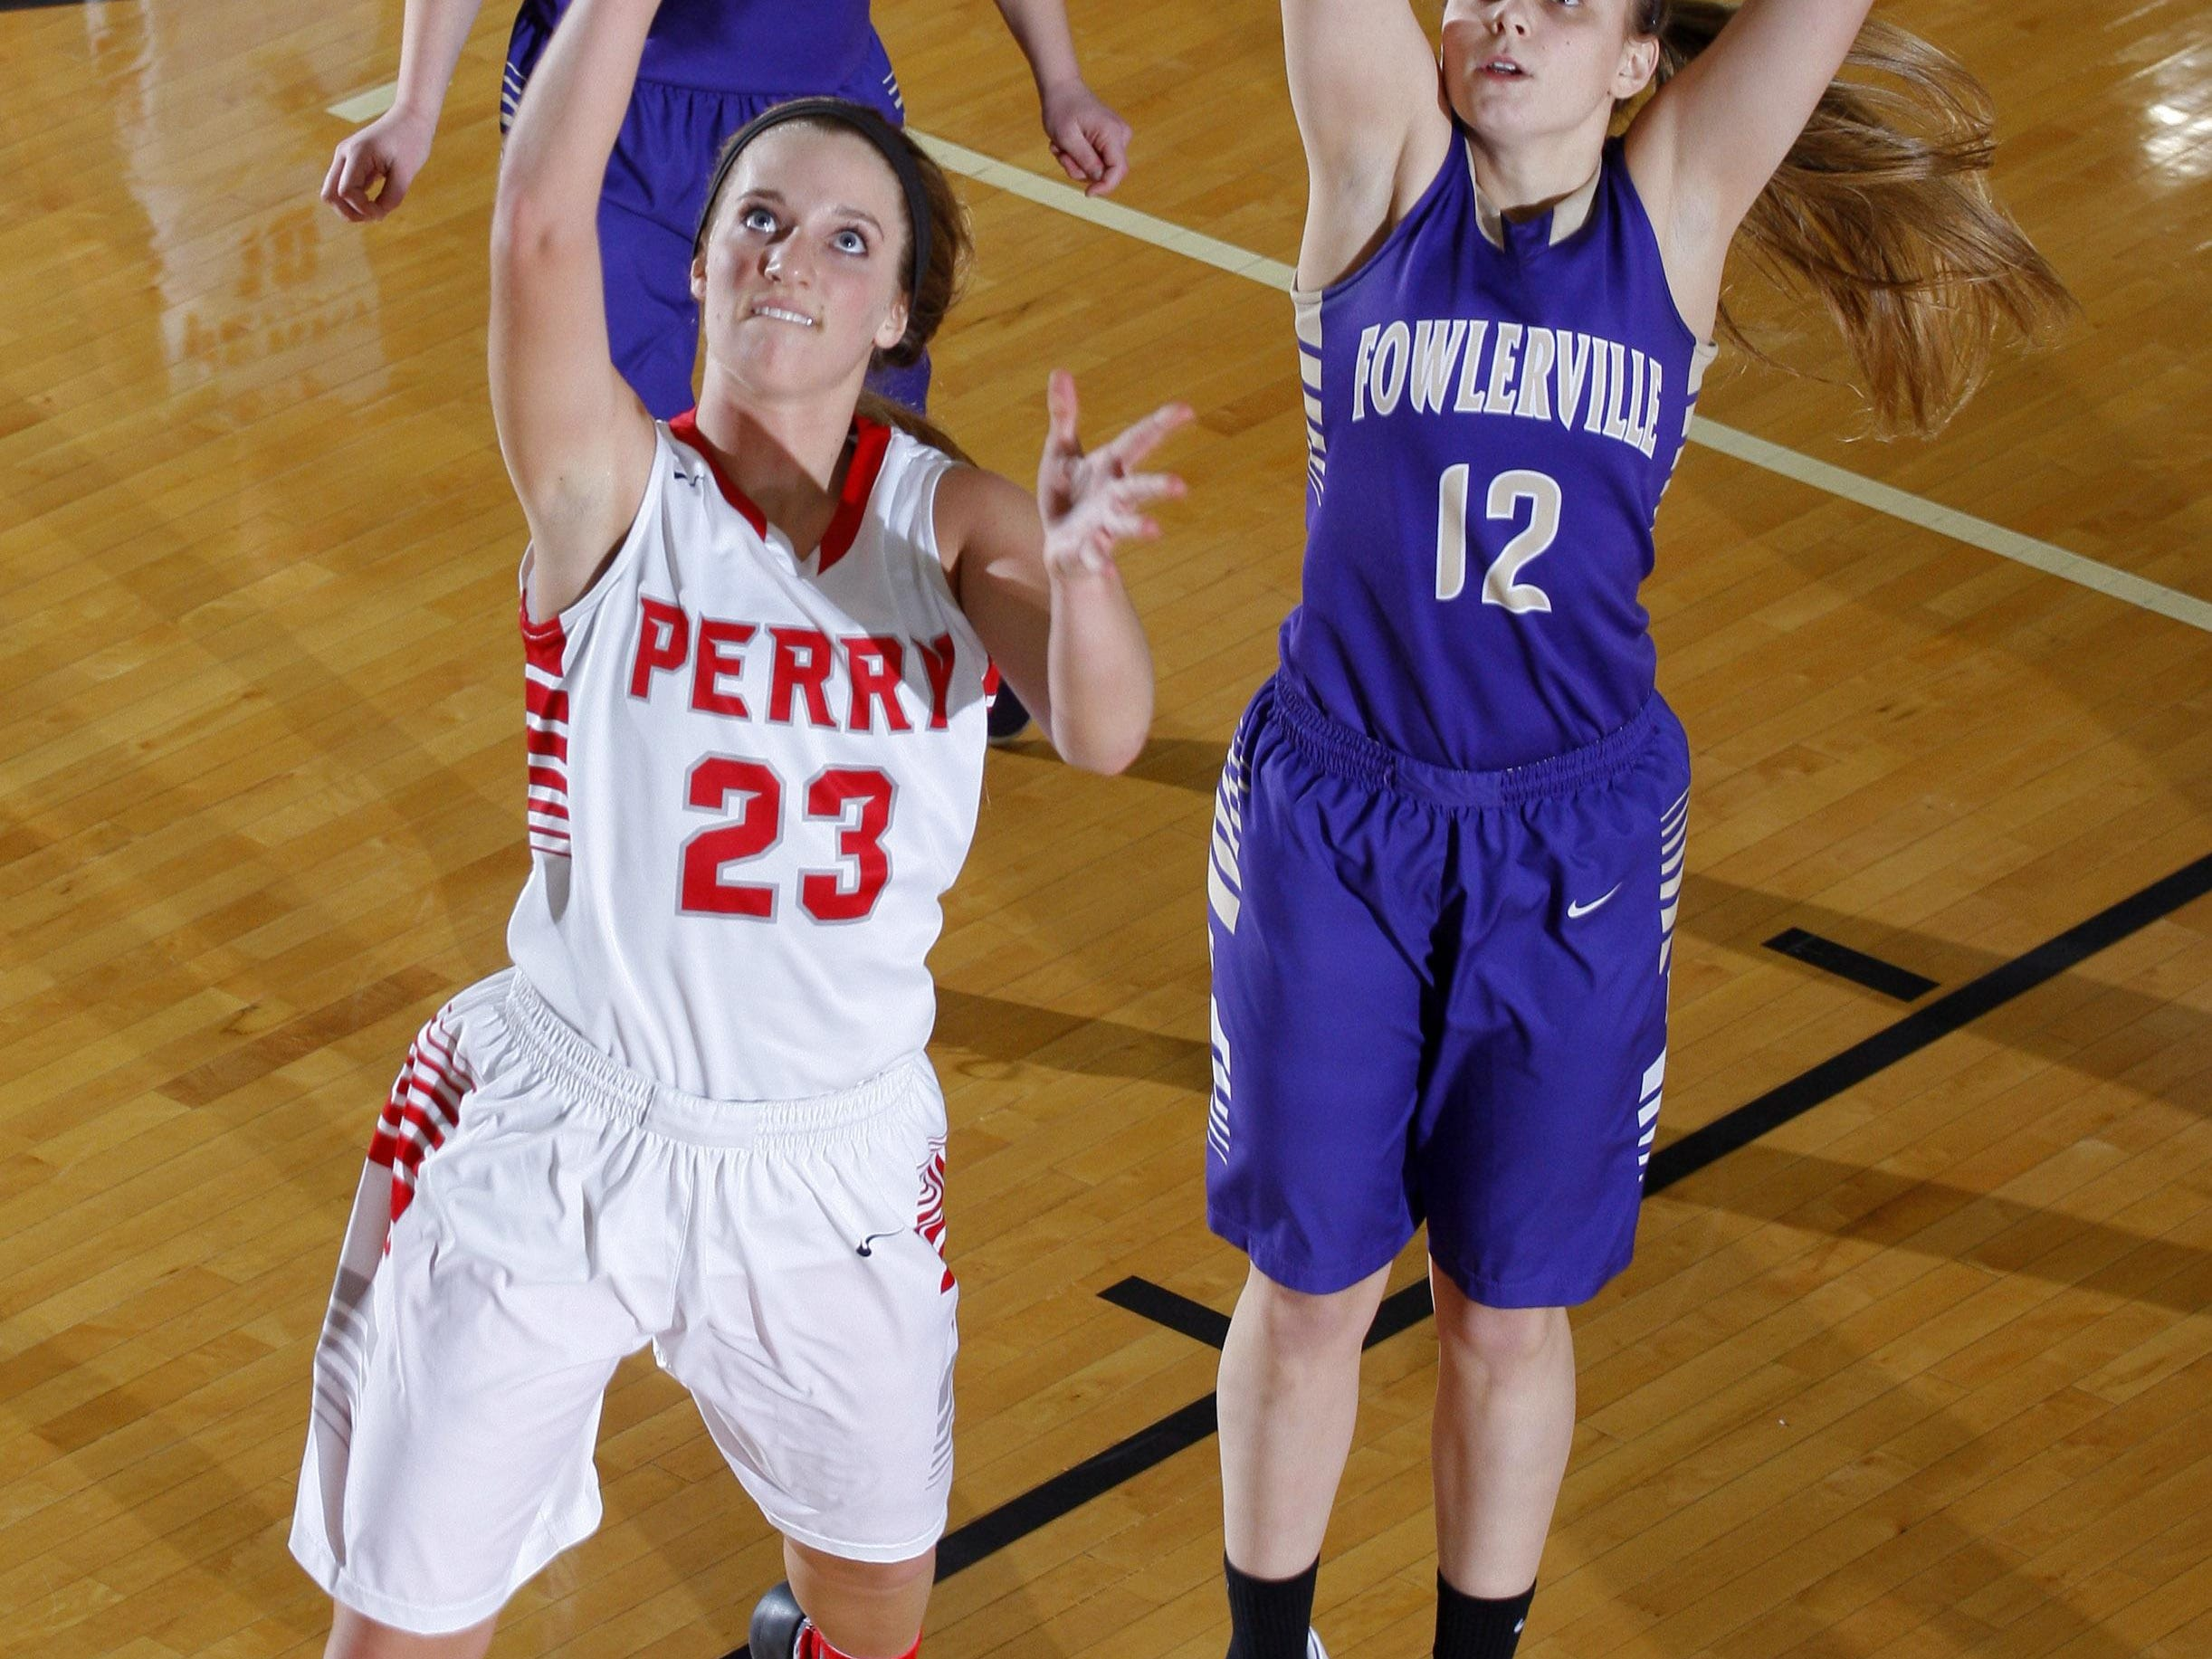 Perry's Kelsey Finch (23) puts up a fast-break layup in front of Fowlerville's Taylor Petterson (12) Wednesday at Williamston High School. Perry won 57-46.